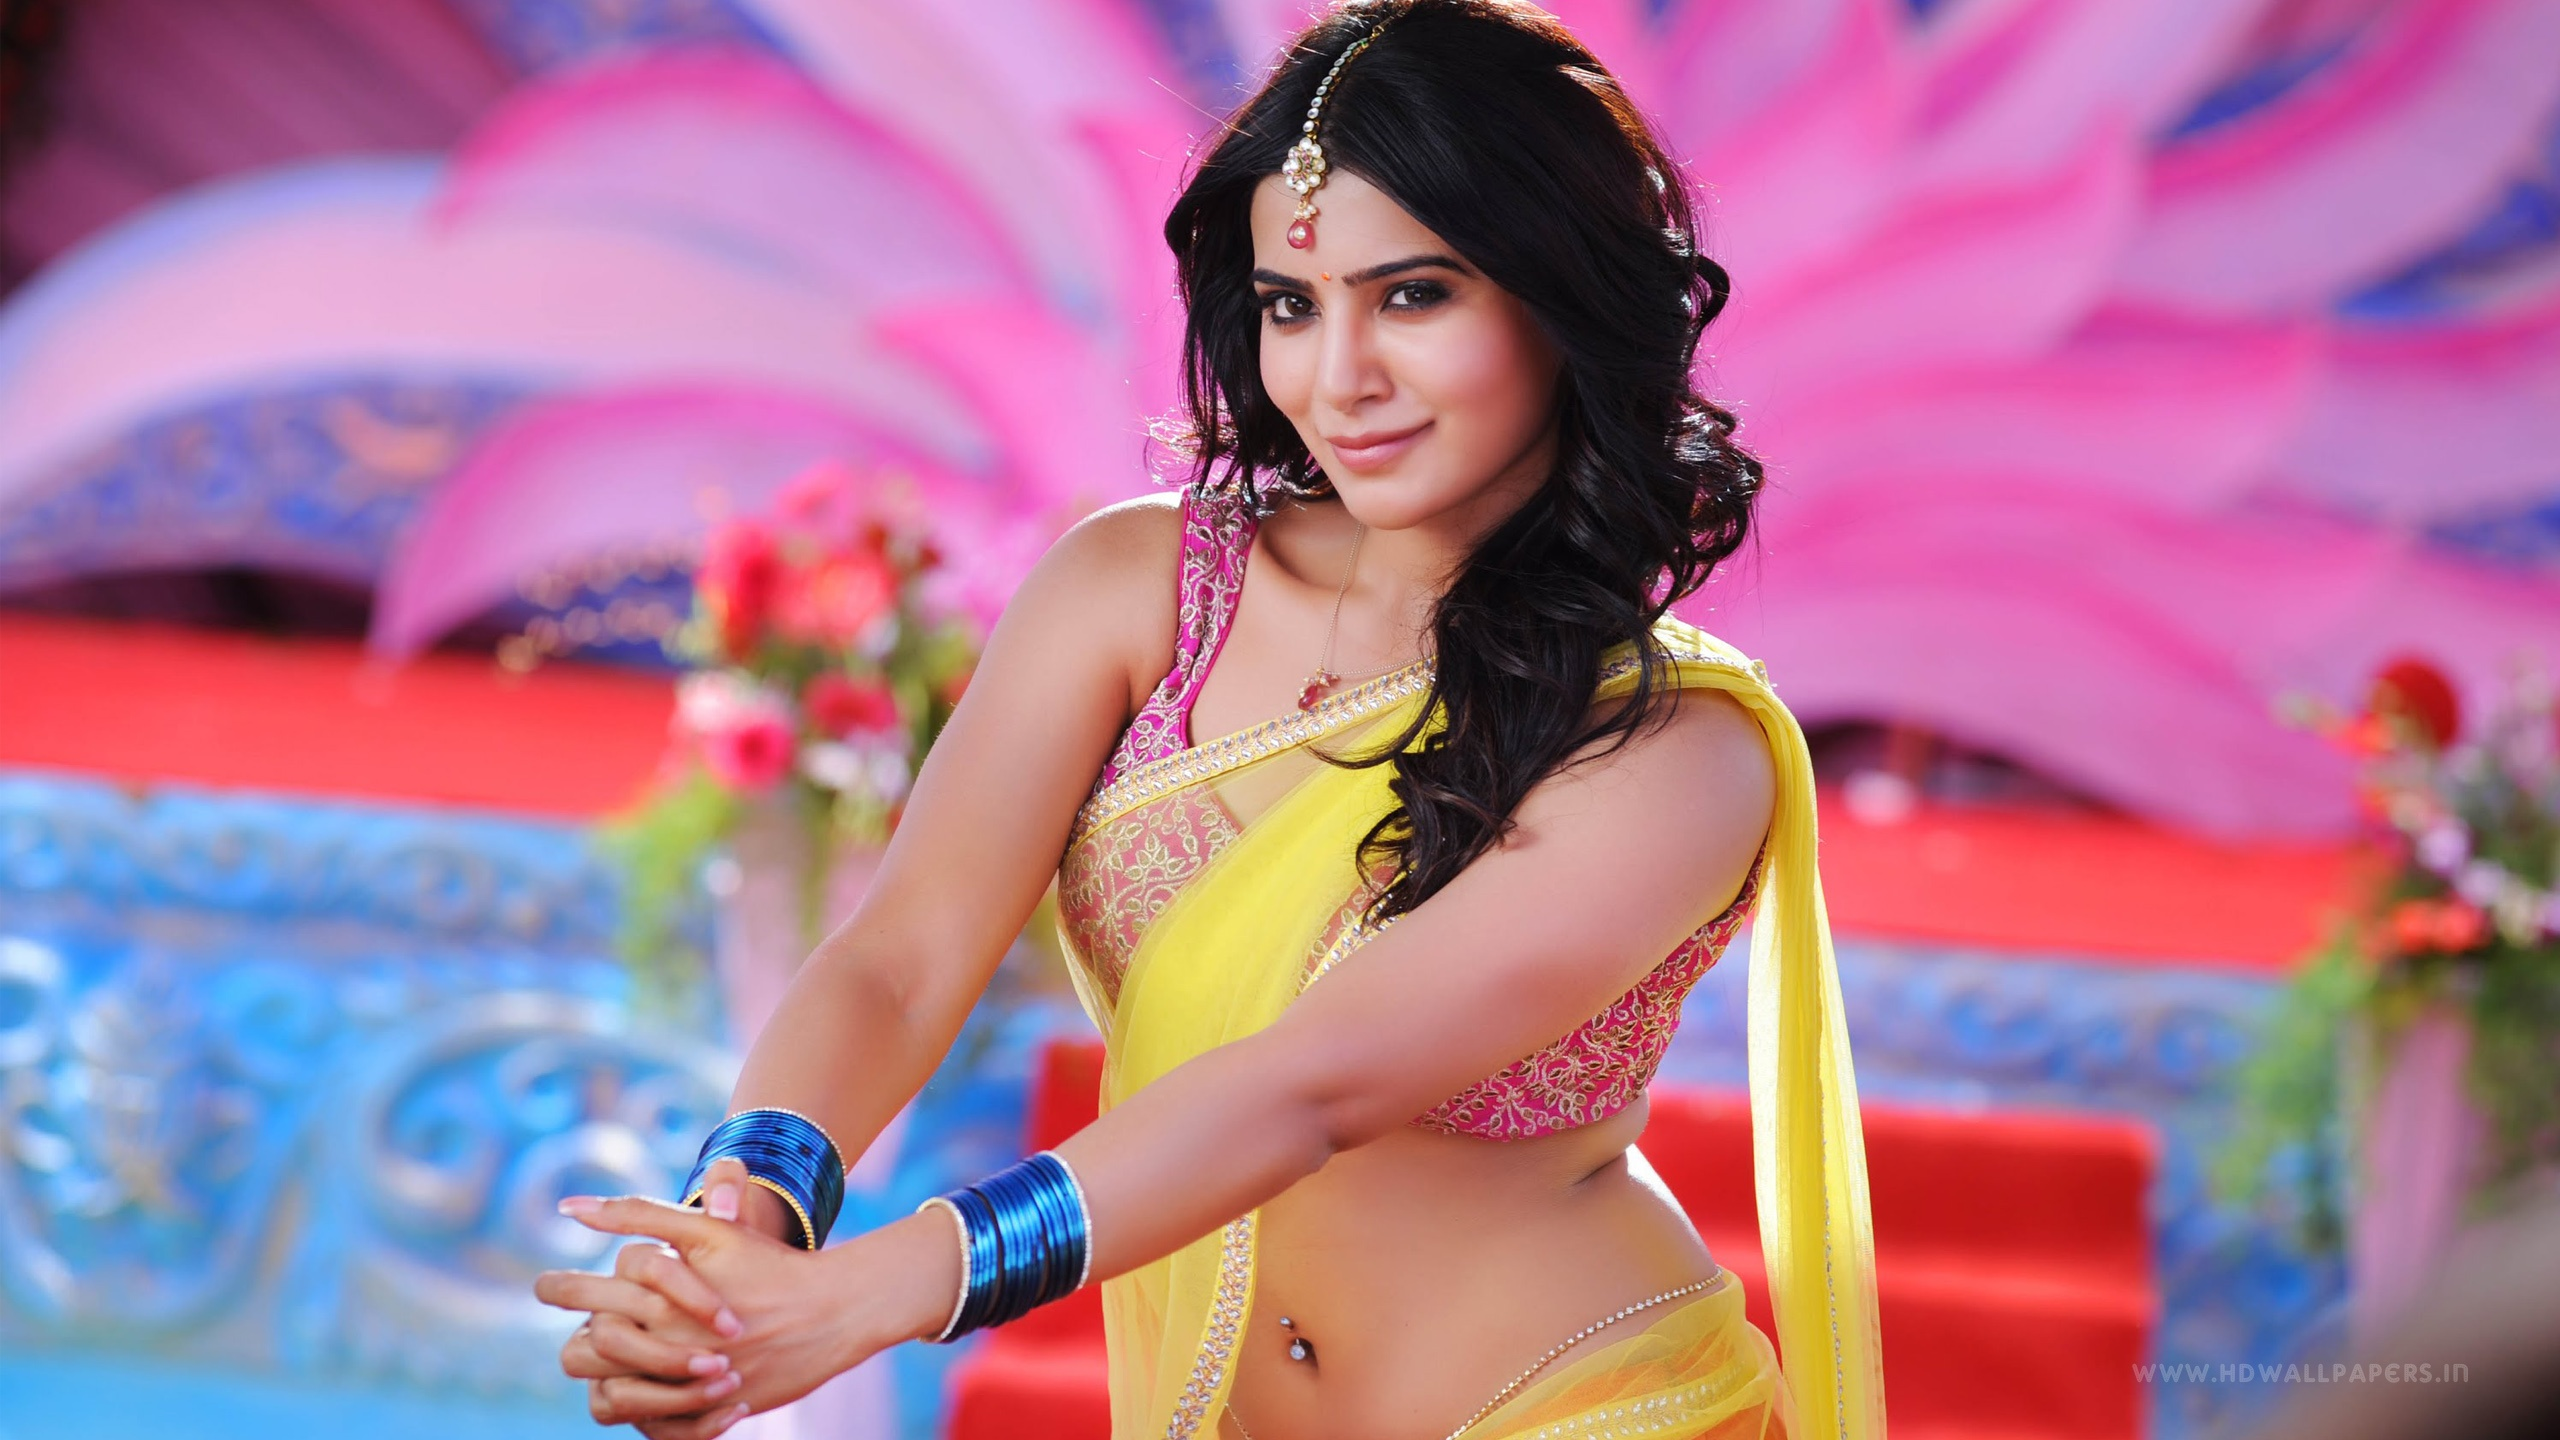 Samantha Actress Wallpapers In Jpg Format For Free Download